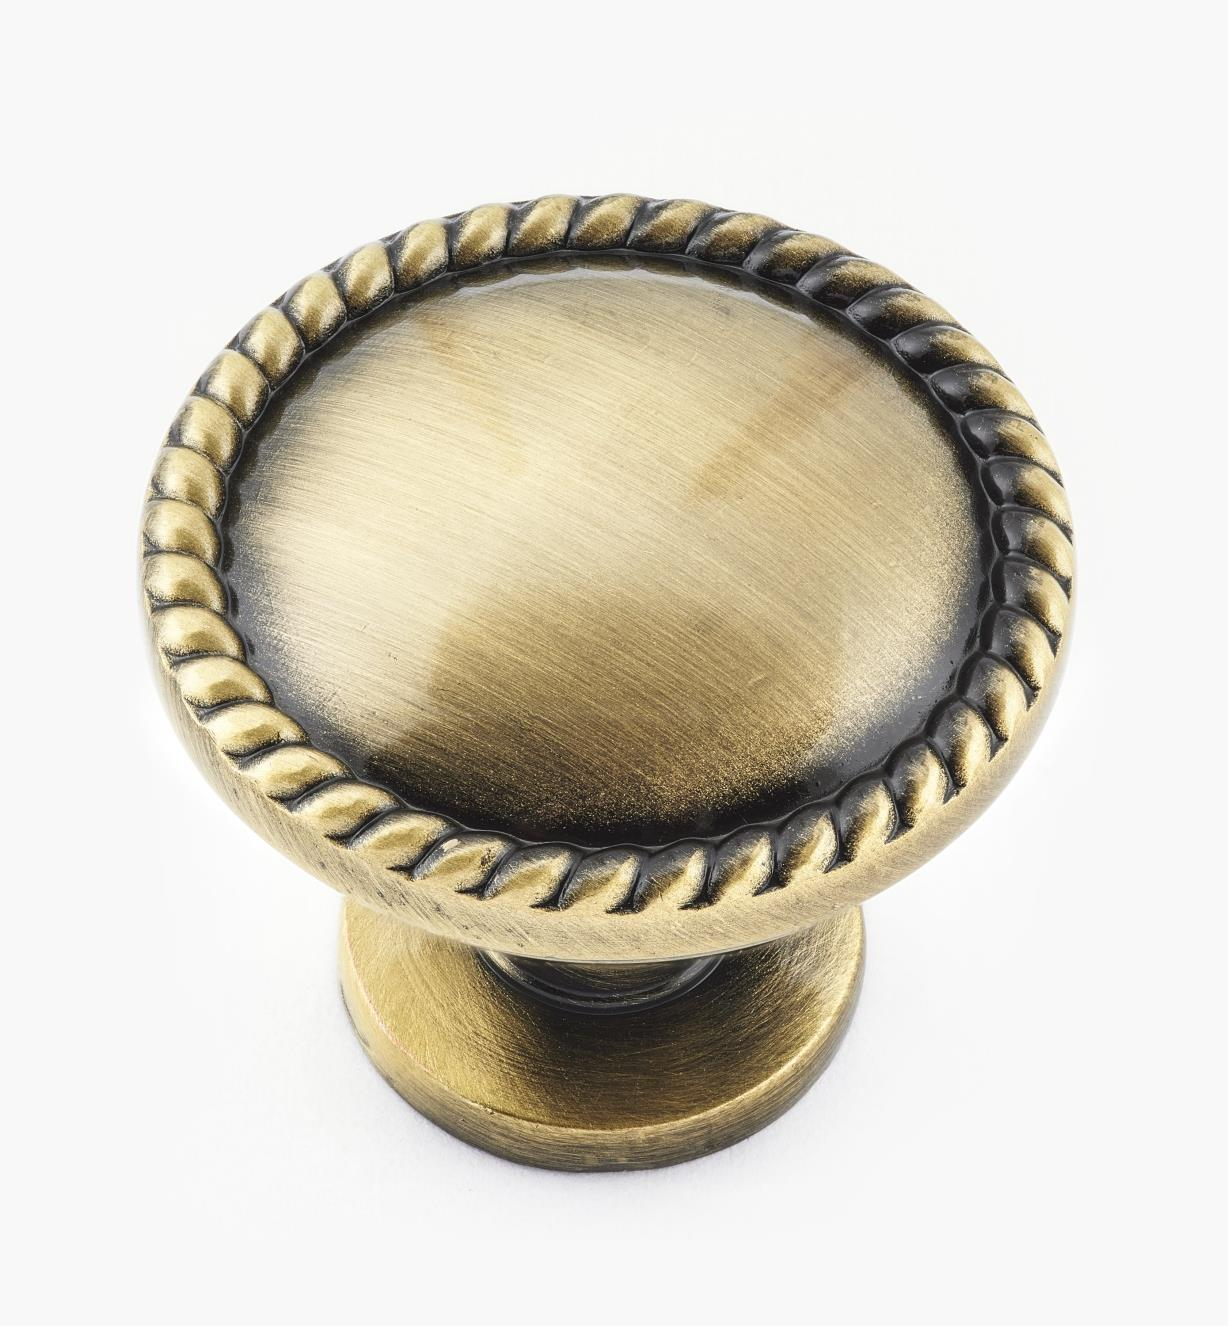 02W4160 - Rope-Edge Round Knob, Antique Brass